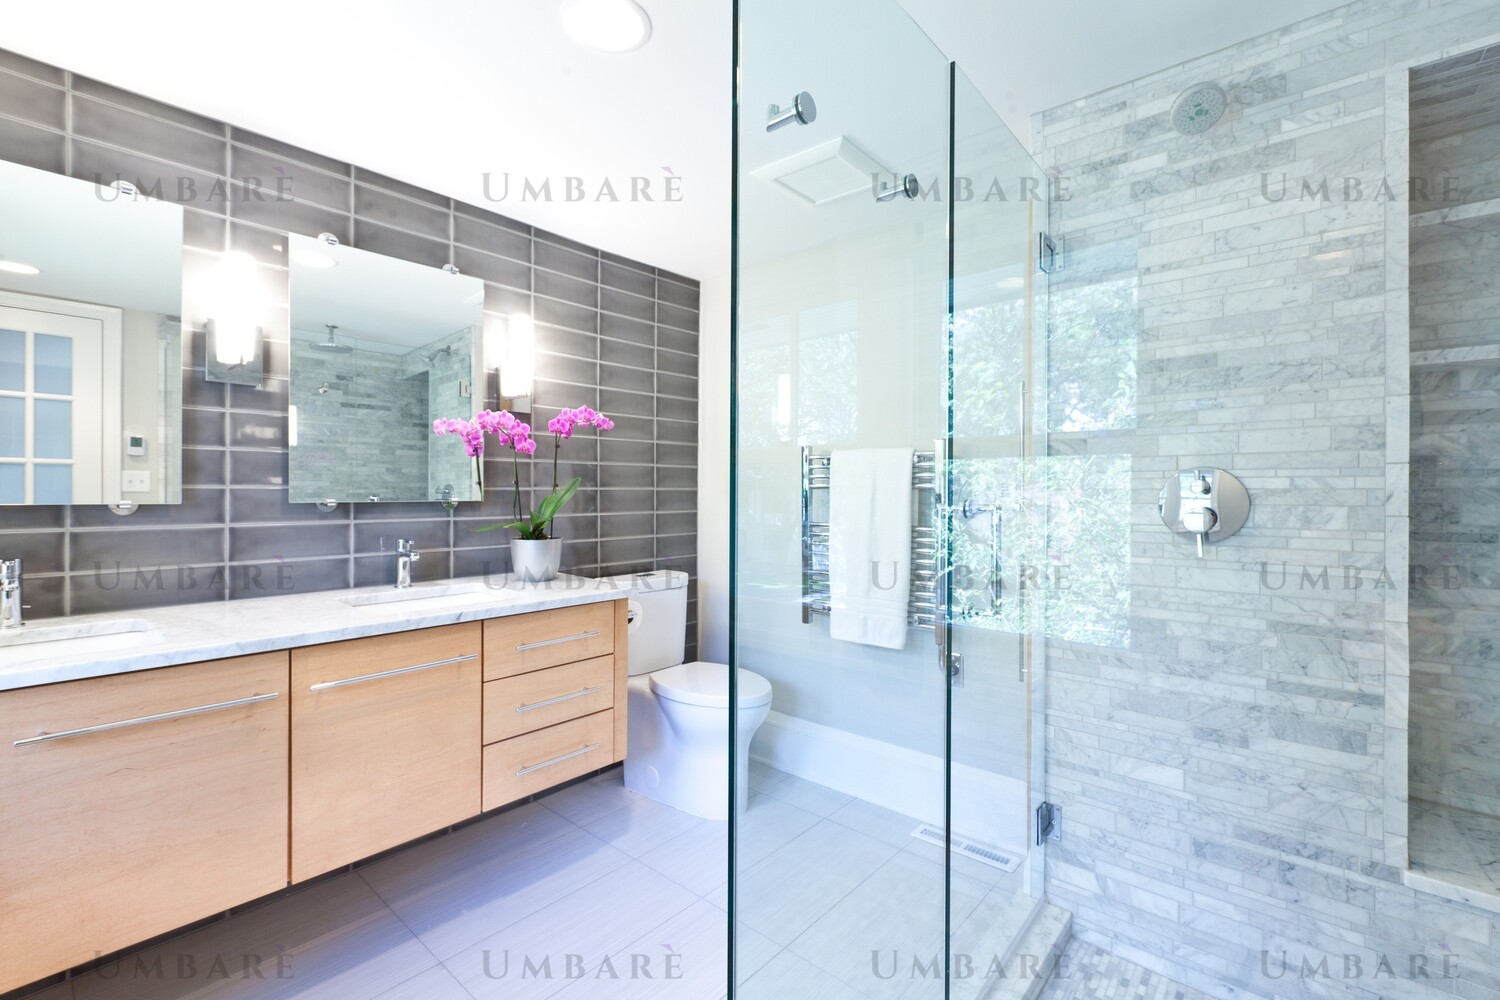 Umbarè Premier Bathroom Remodeling Package